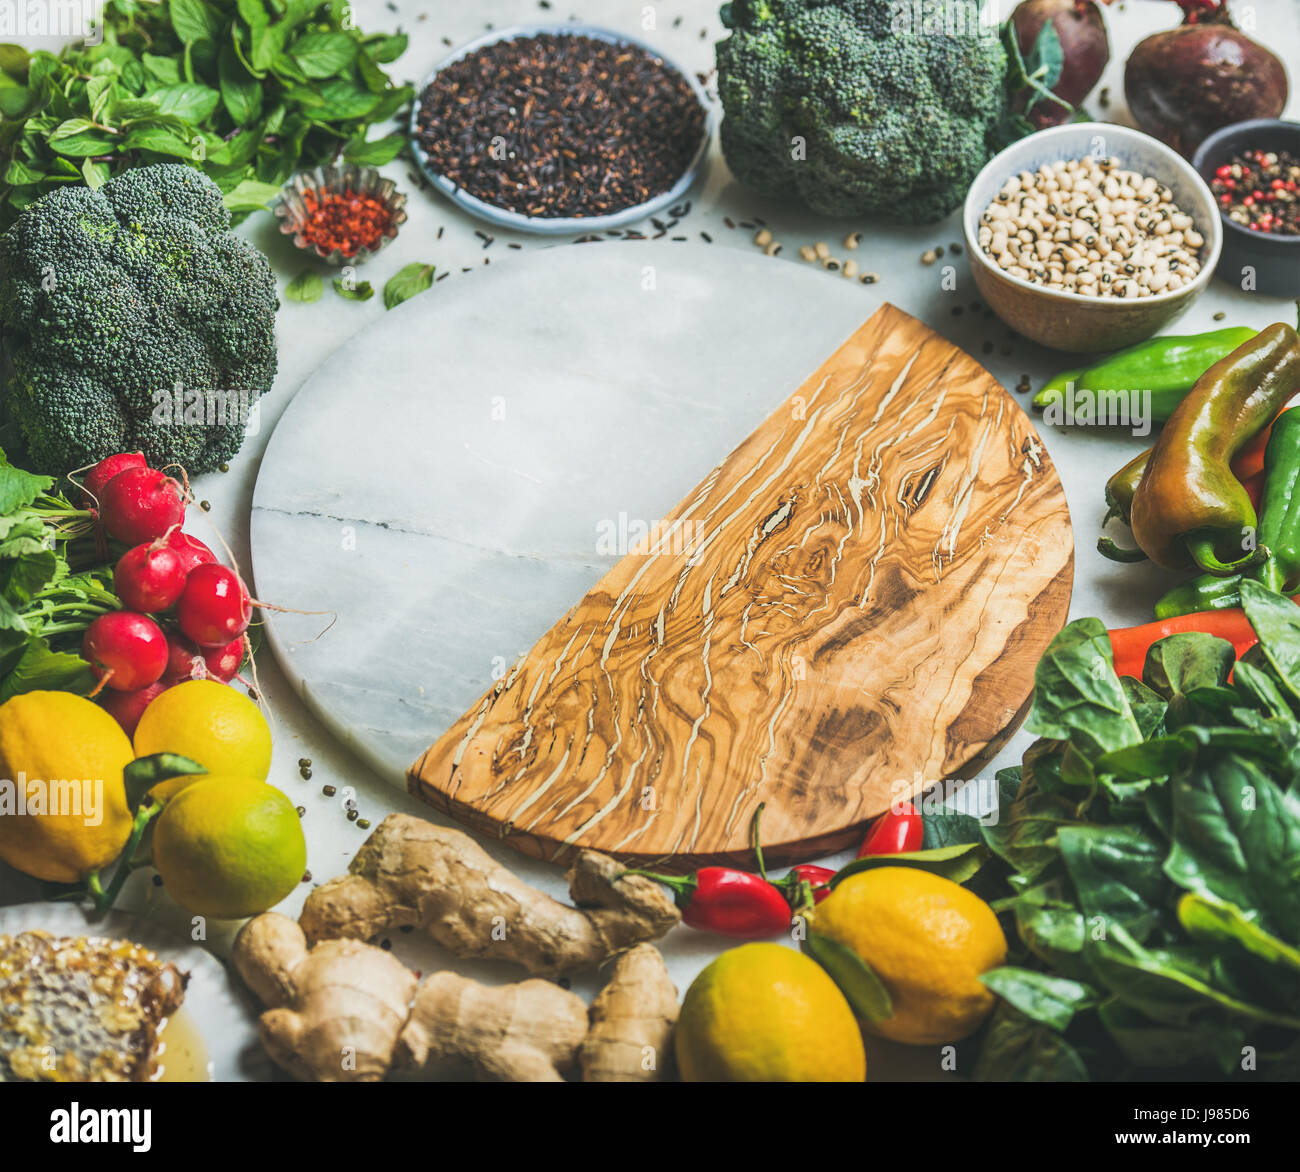 Vegetables, beans, grains, greens, fruit, spices over grey background - Stock Image